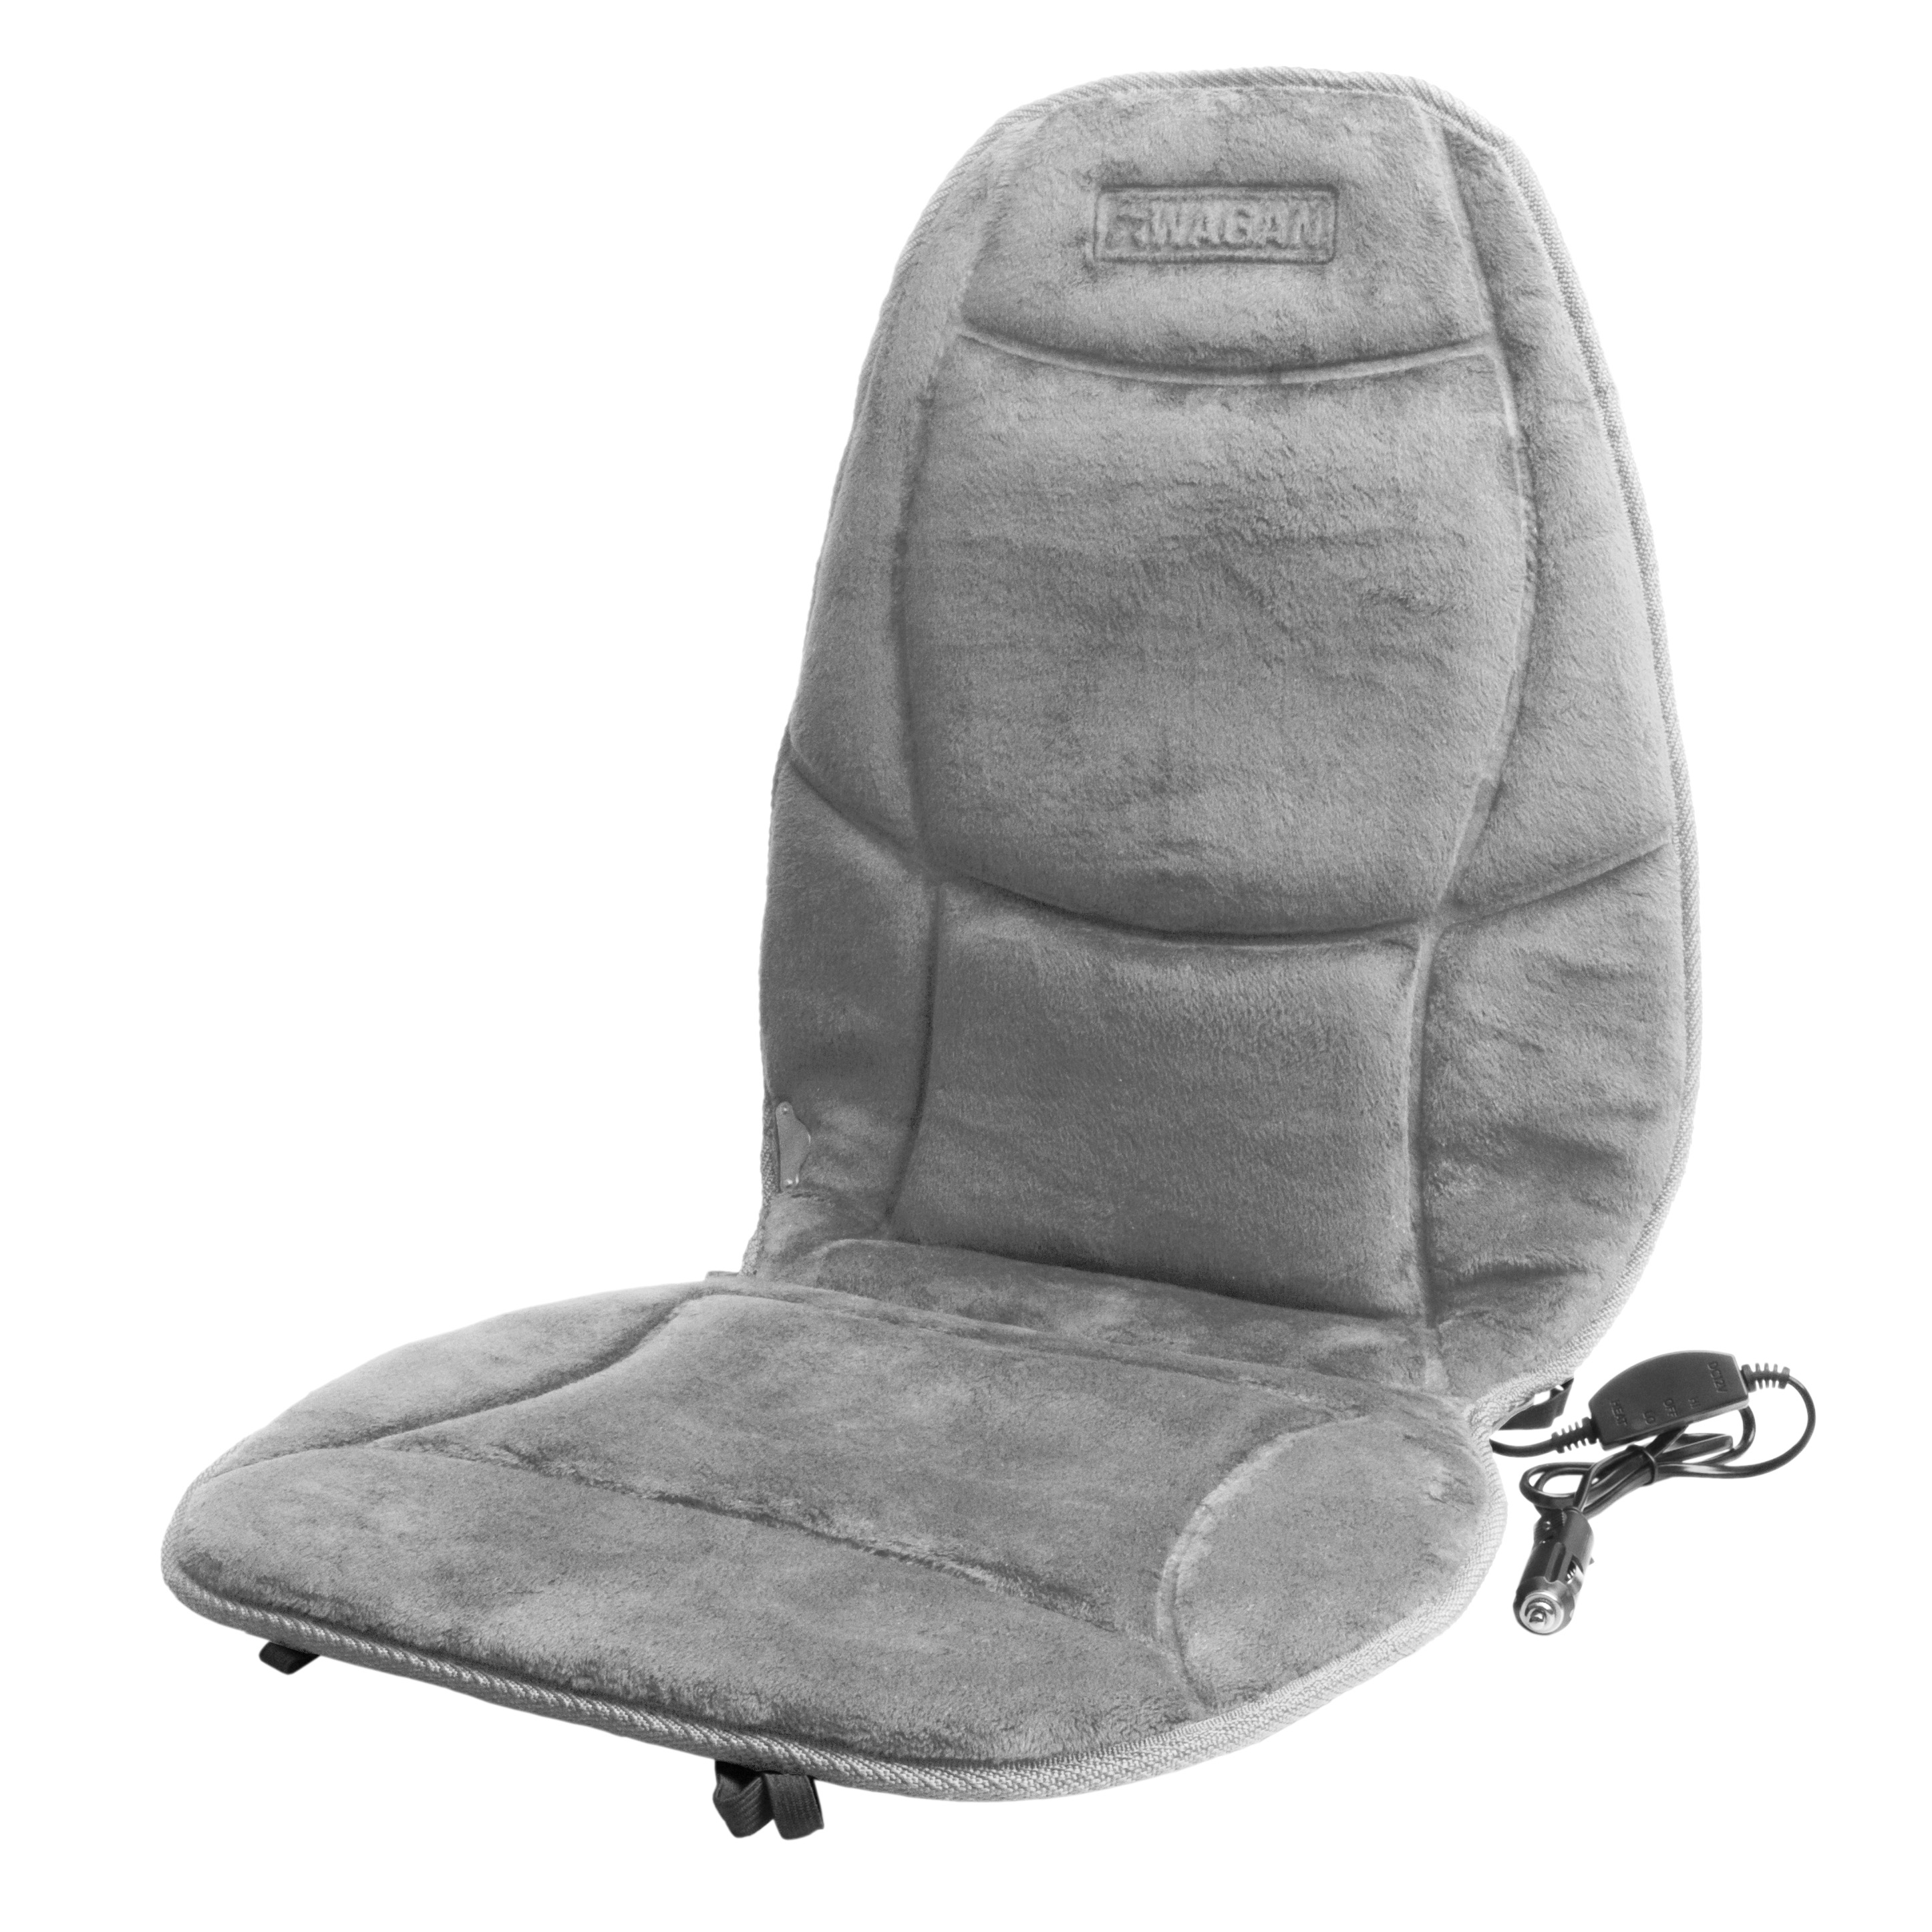 Wagan 12V Auto Soft Velour Heated Seat Cushion with Lumbar Support, Grey